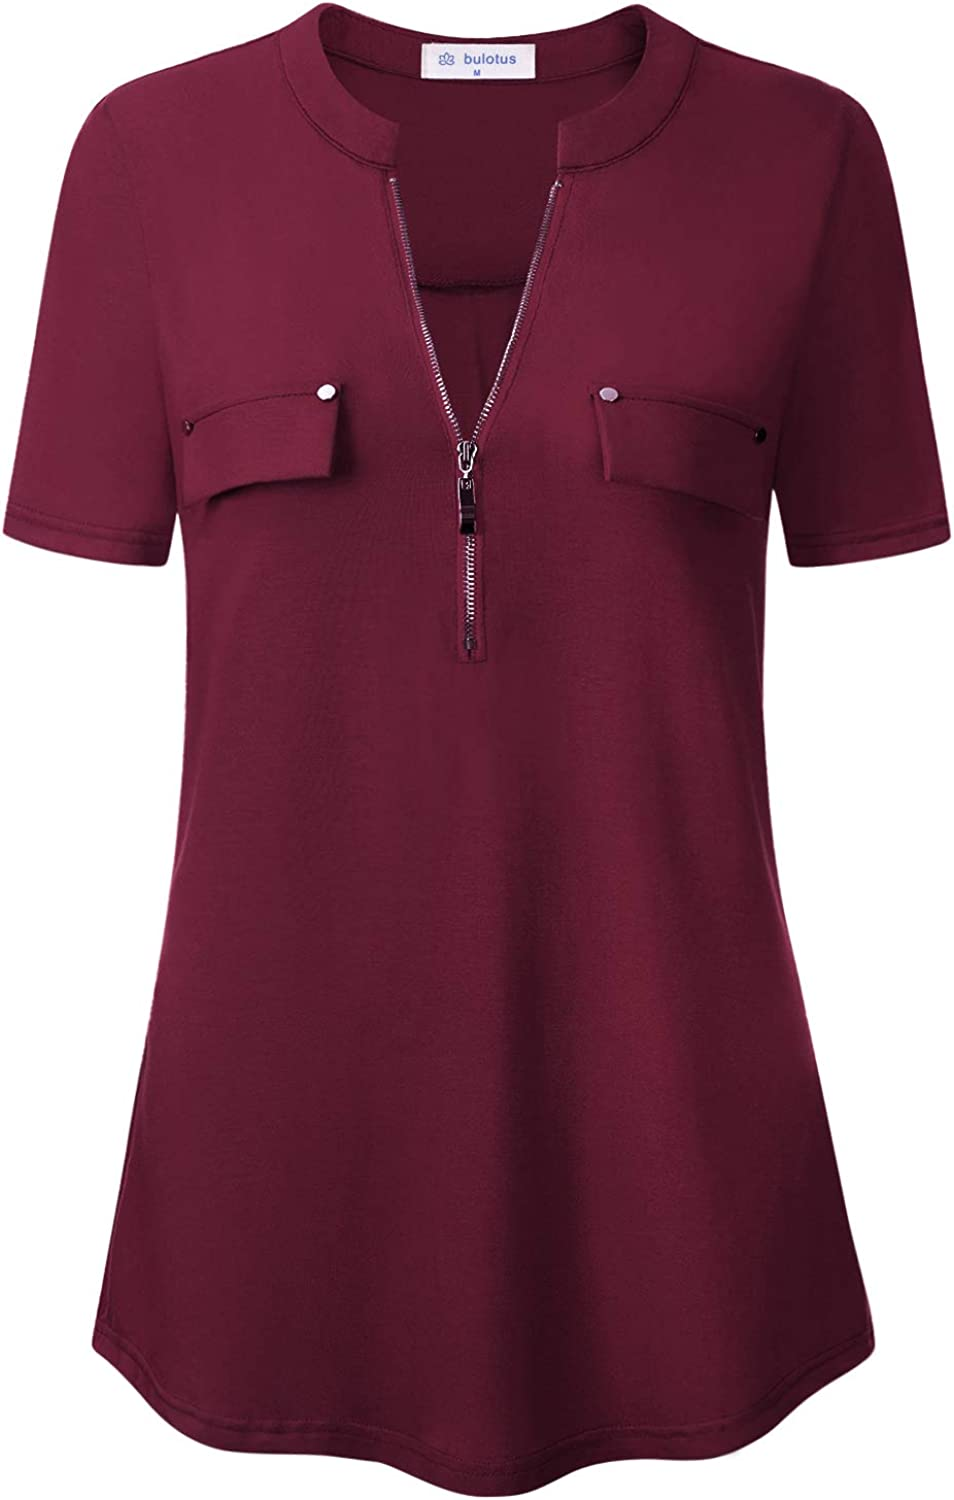 Bulotus Women's Zip Front V-Neck Short Work Top Credence Max 84% OFF Sleeve Casual Bl